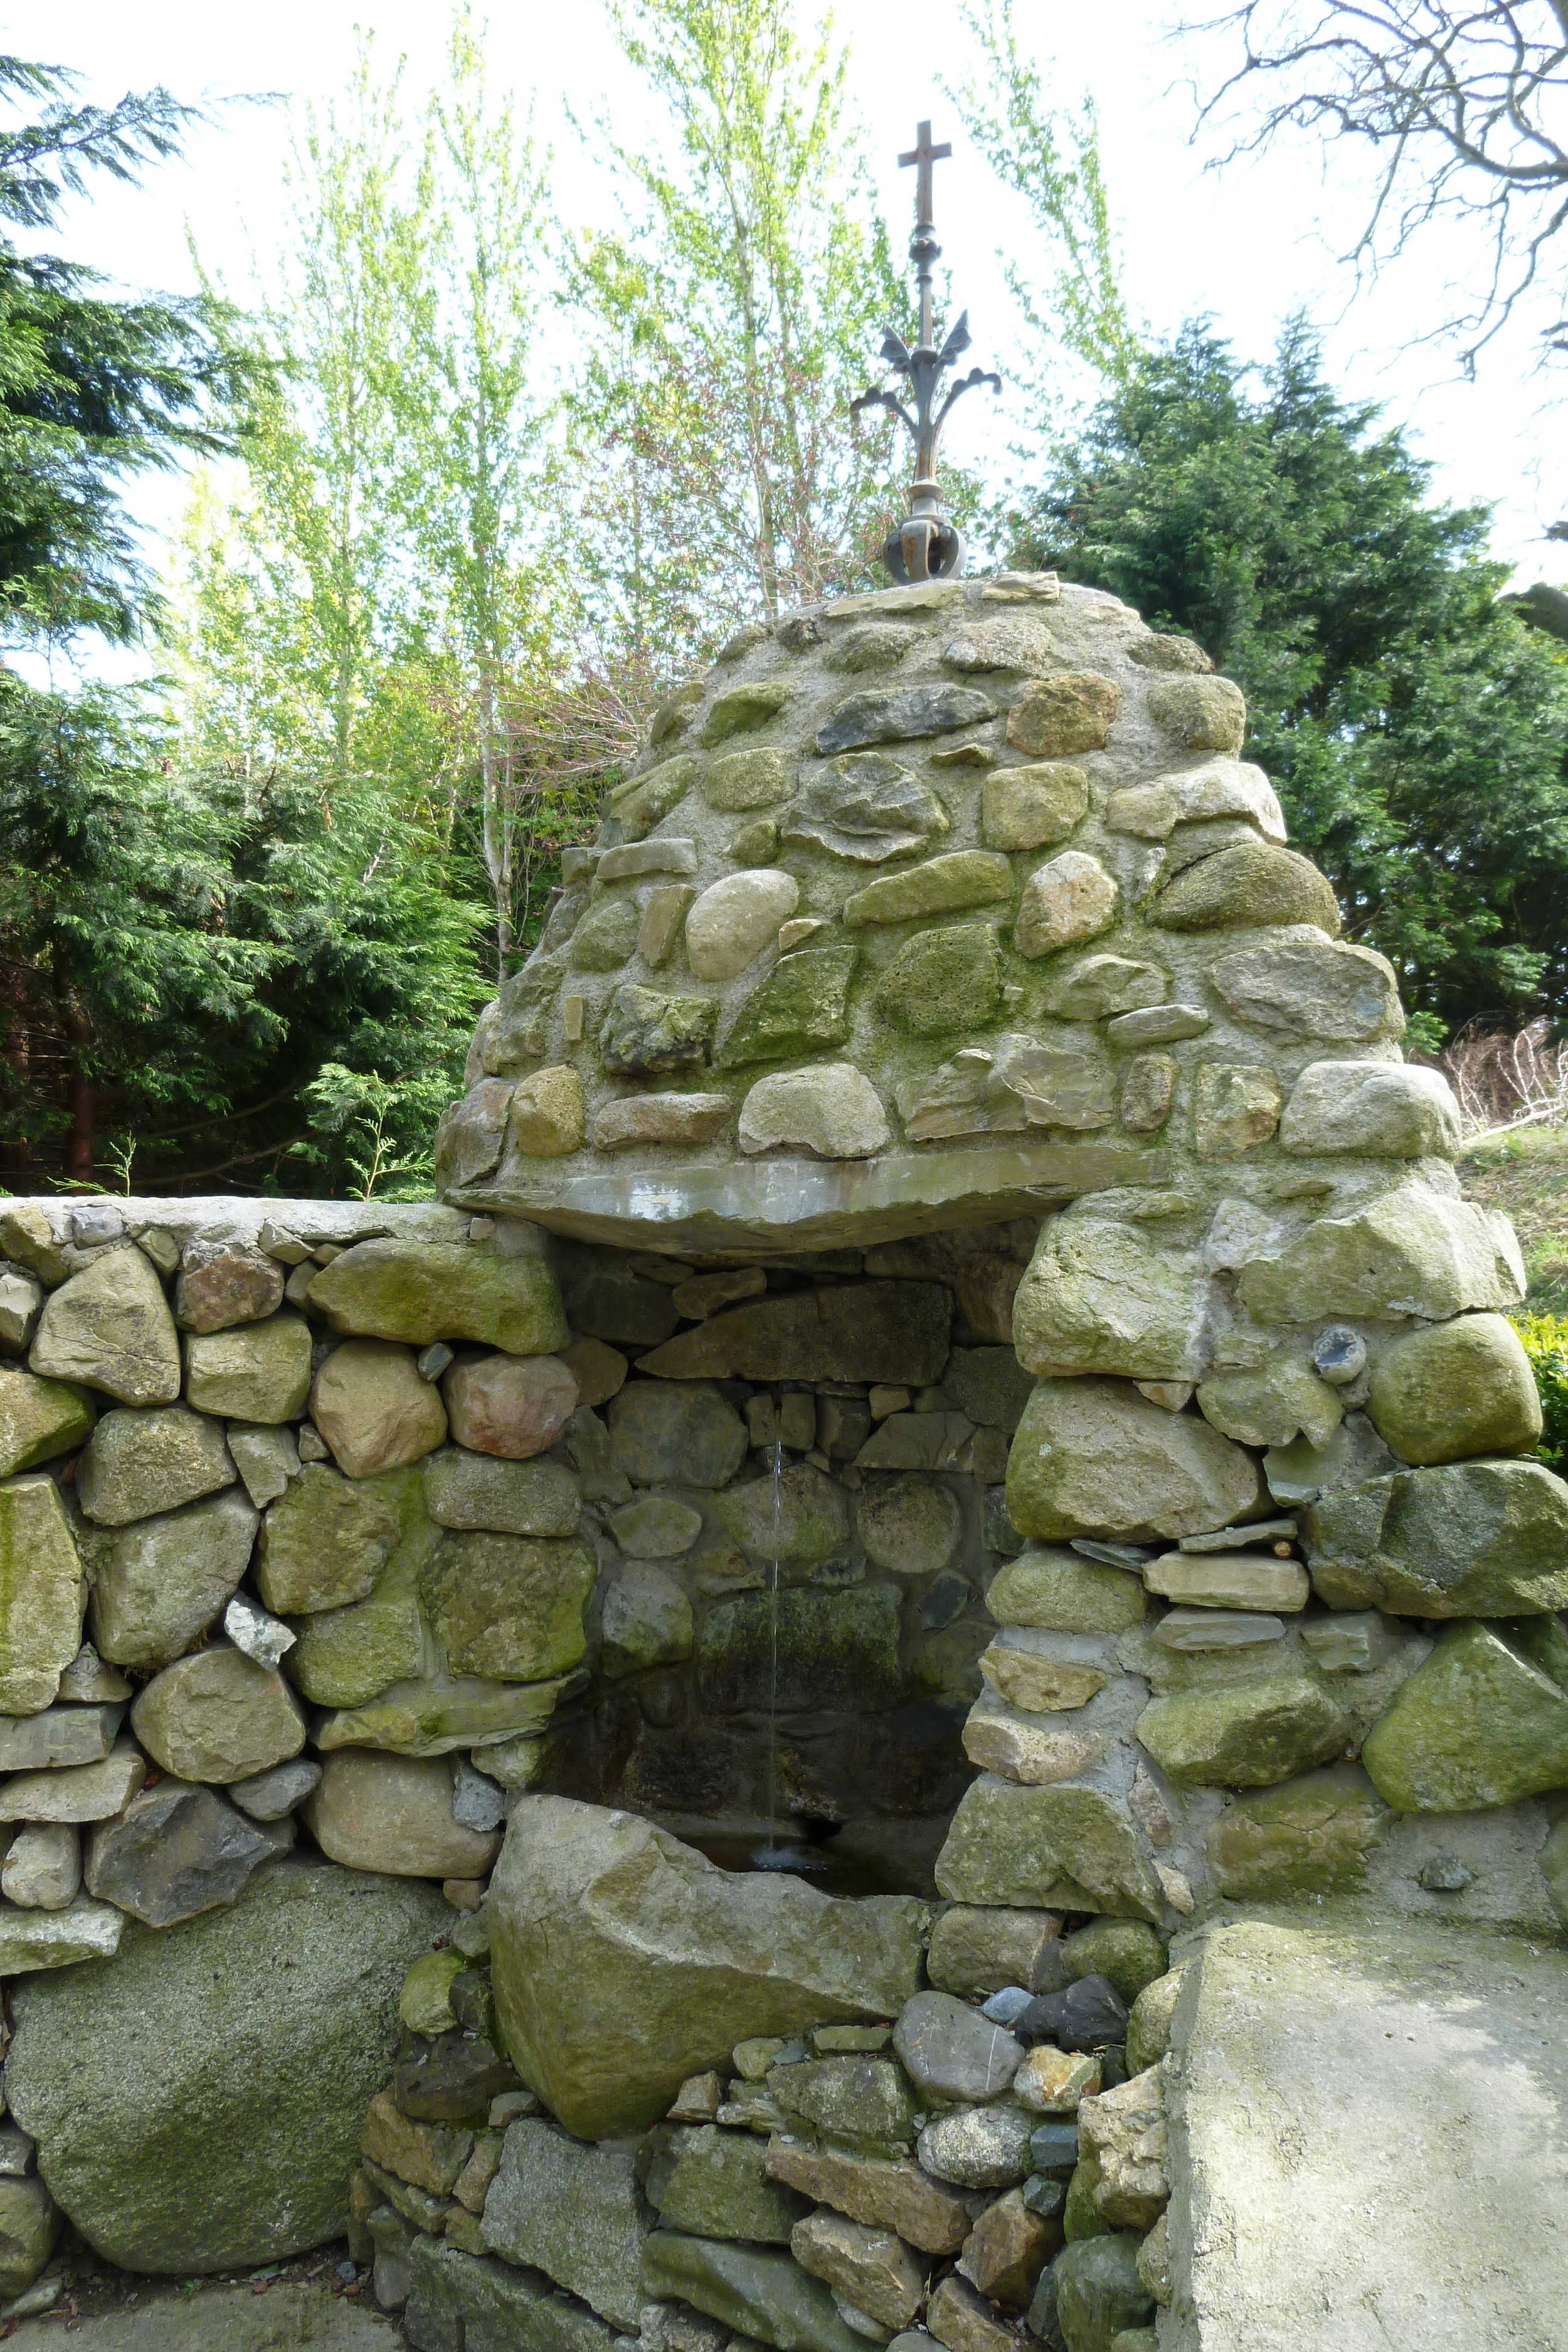 The actual well associated with St. Brigid in Faughart is a little higher up the hill, but this source near her stream is the one that most pilgrims use to gather water to take home.